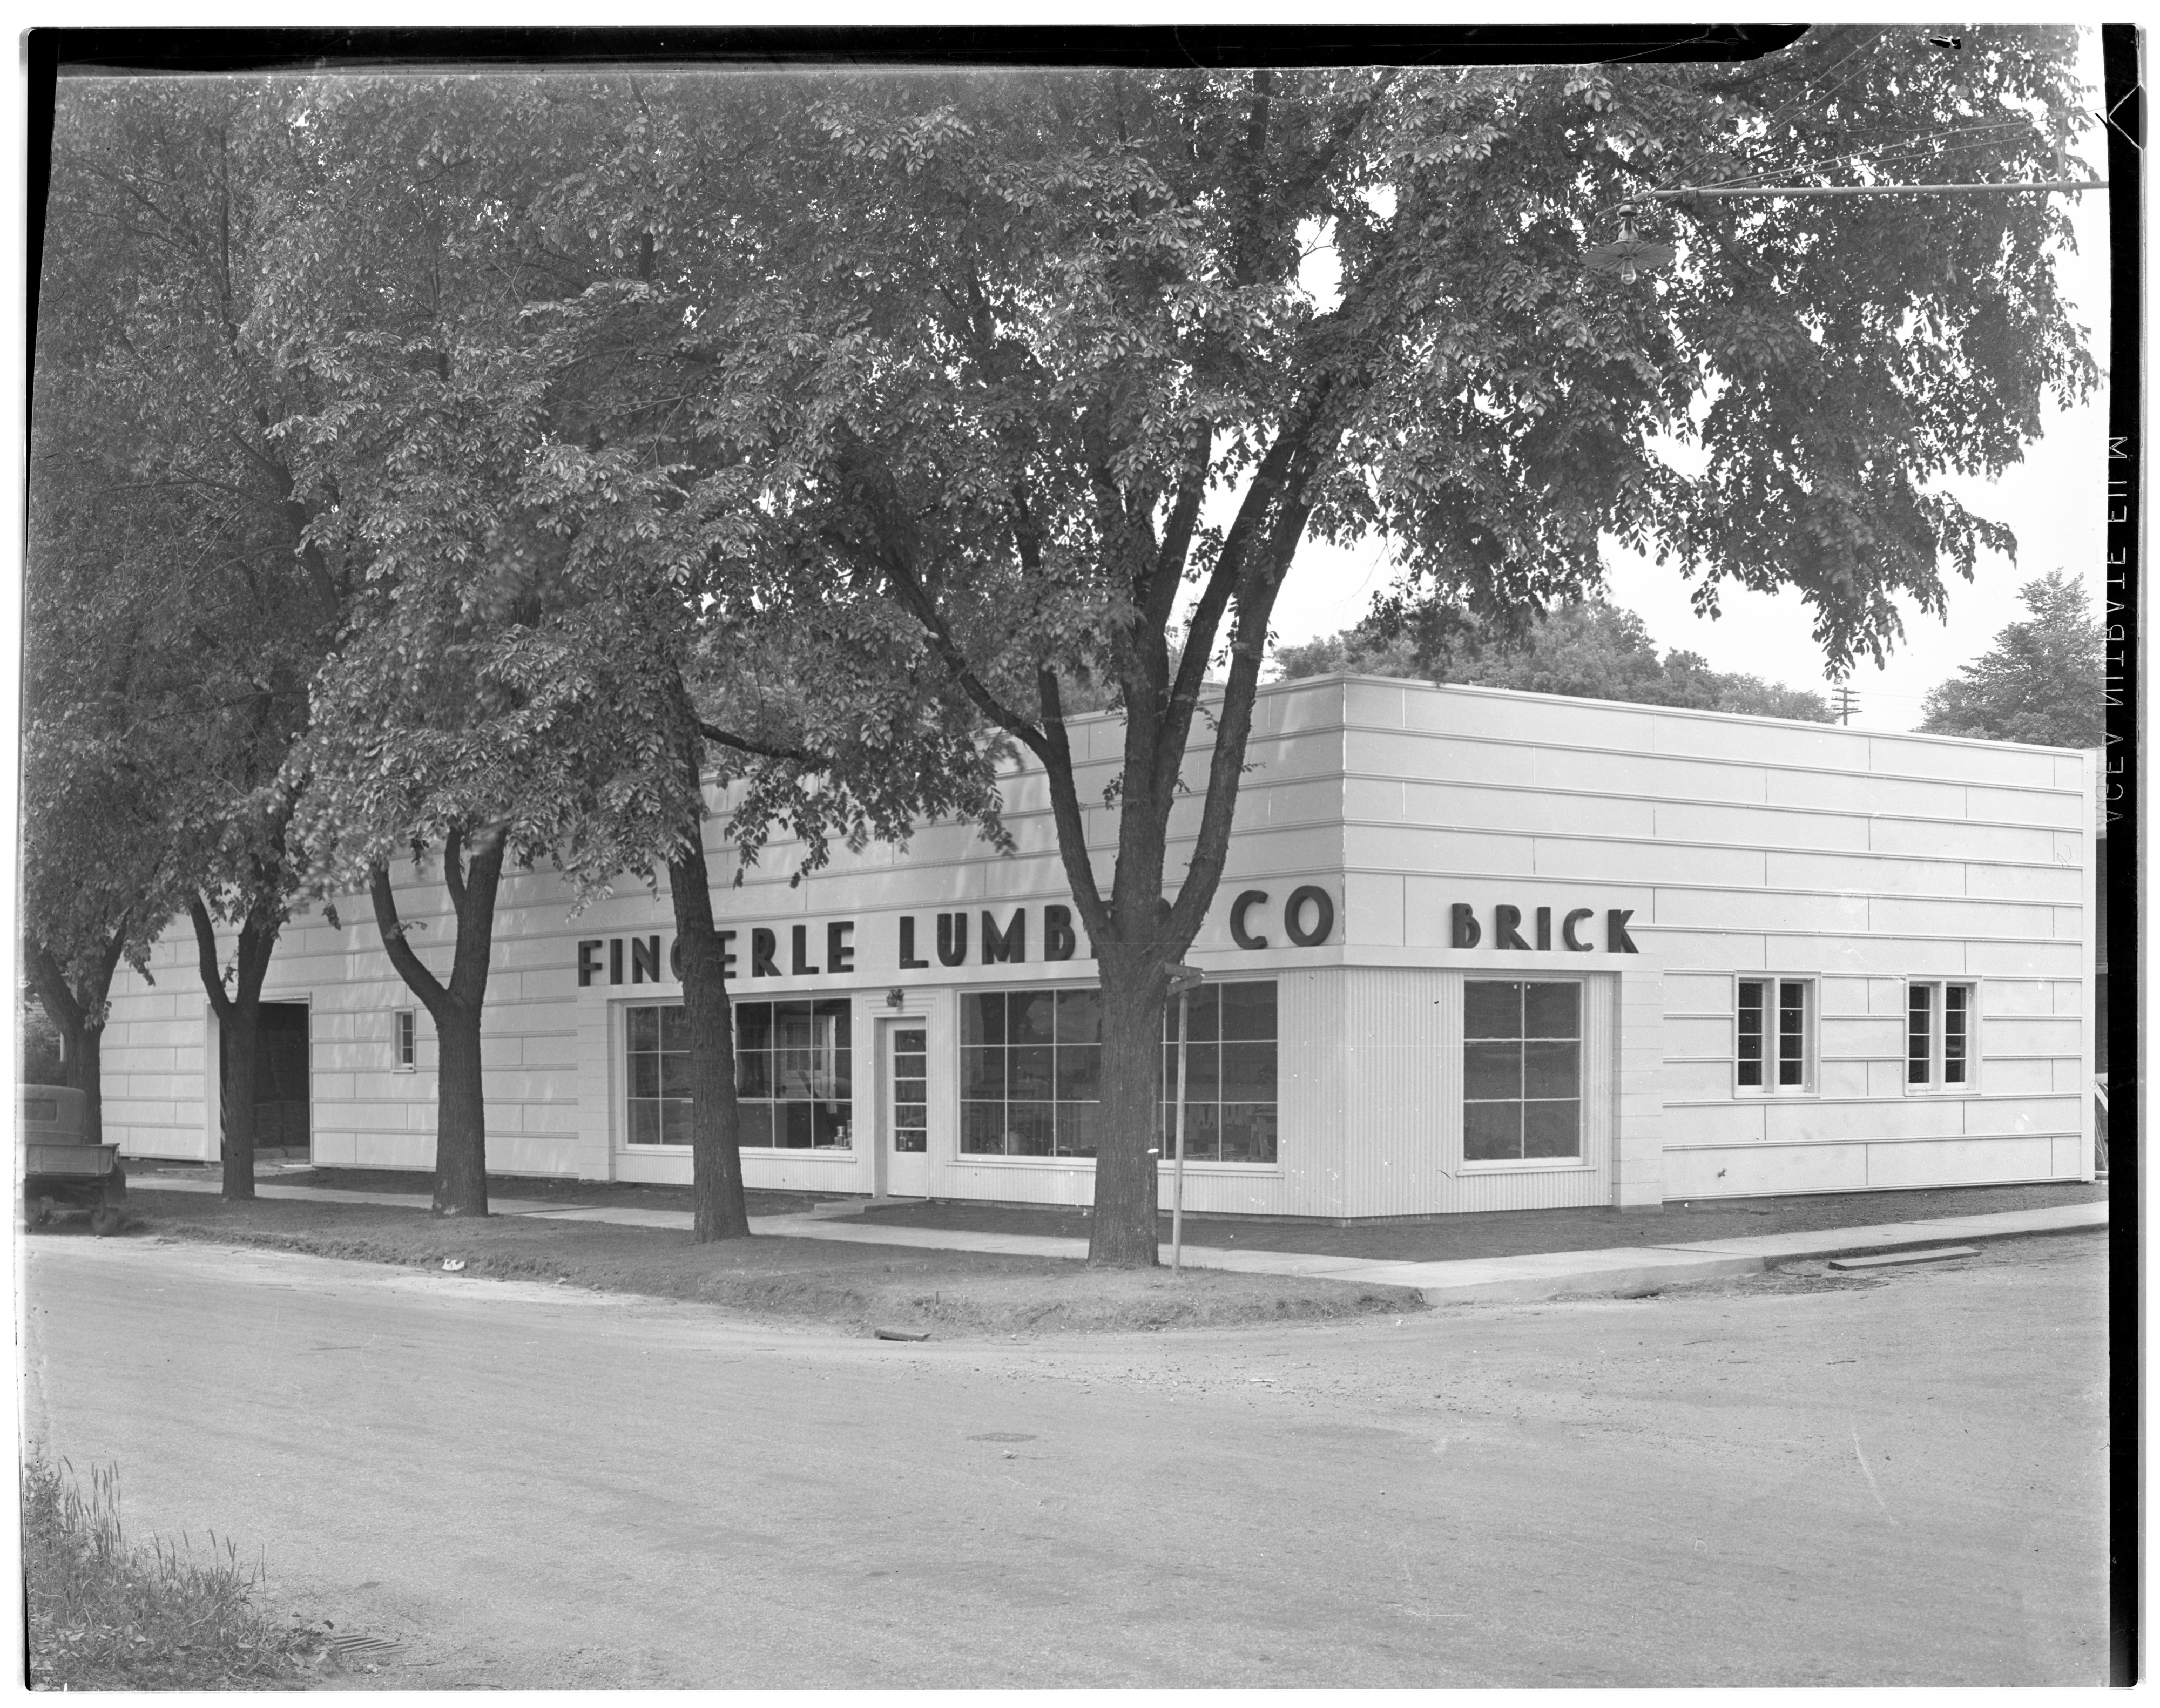 Fingerle Lumber Company - New Office, Store & Display Room, June 1936 image